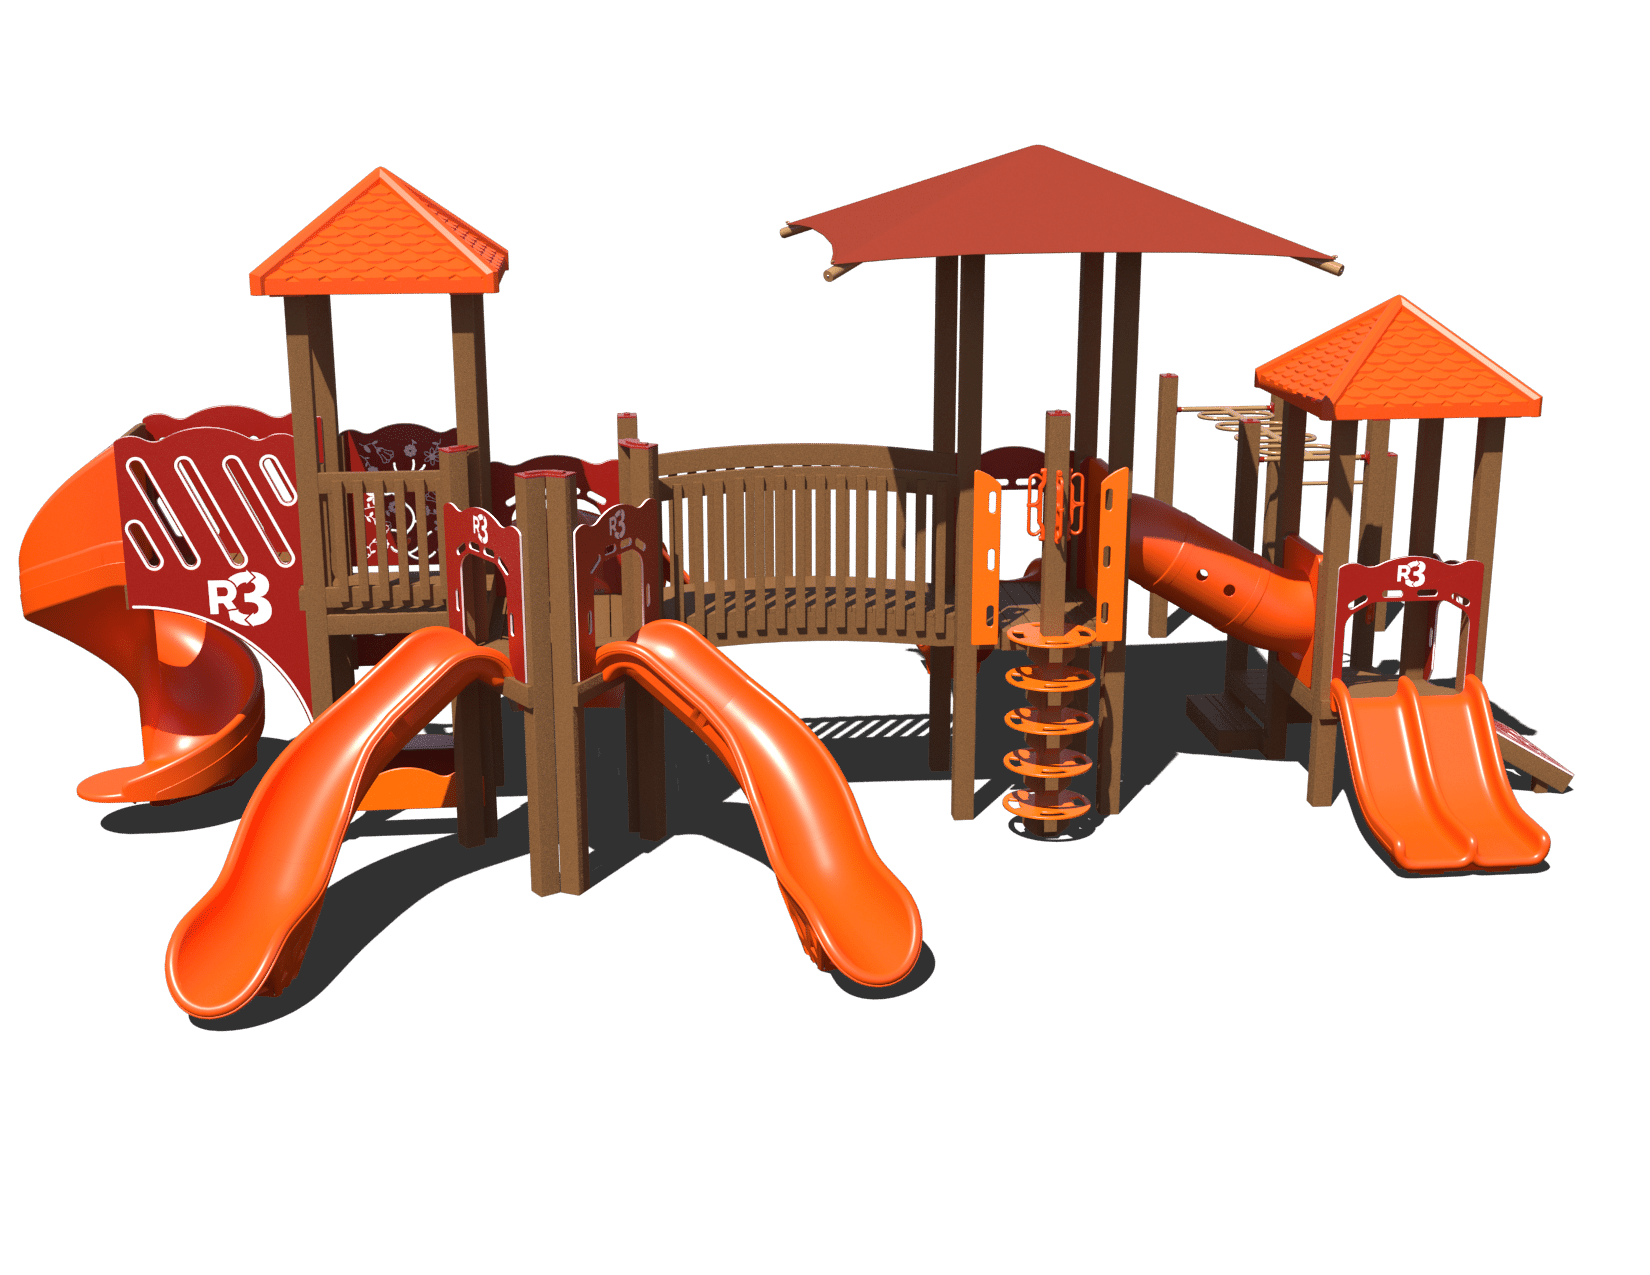 Ggr3 0009 Composite Playset Affordable Playgrounds By